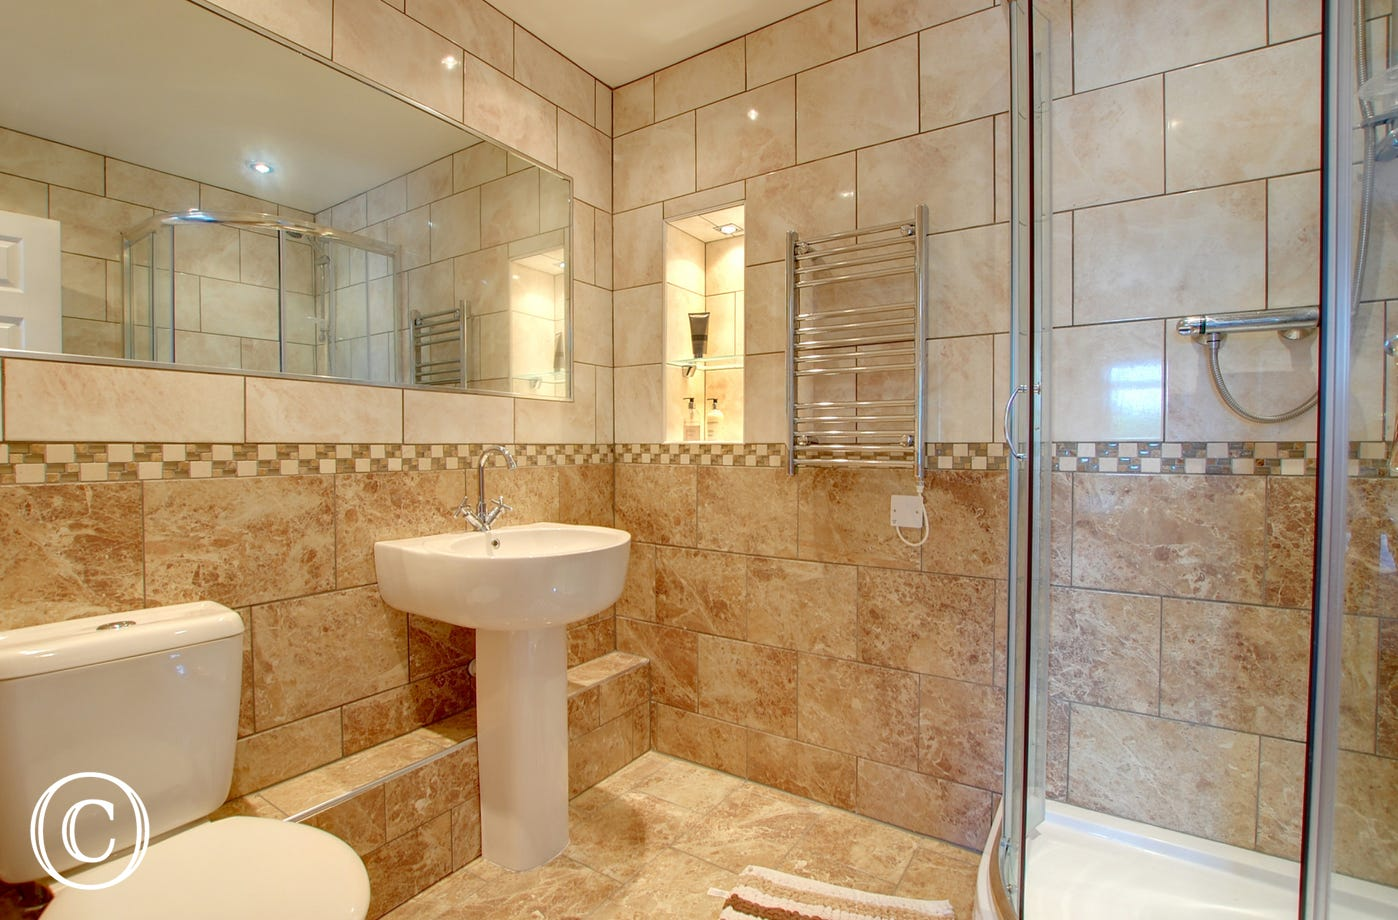 Fully tiled shower room, heated towel rail.